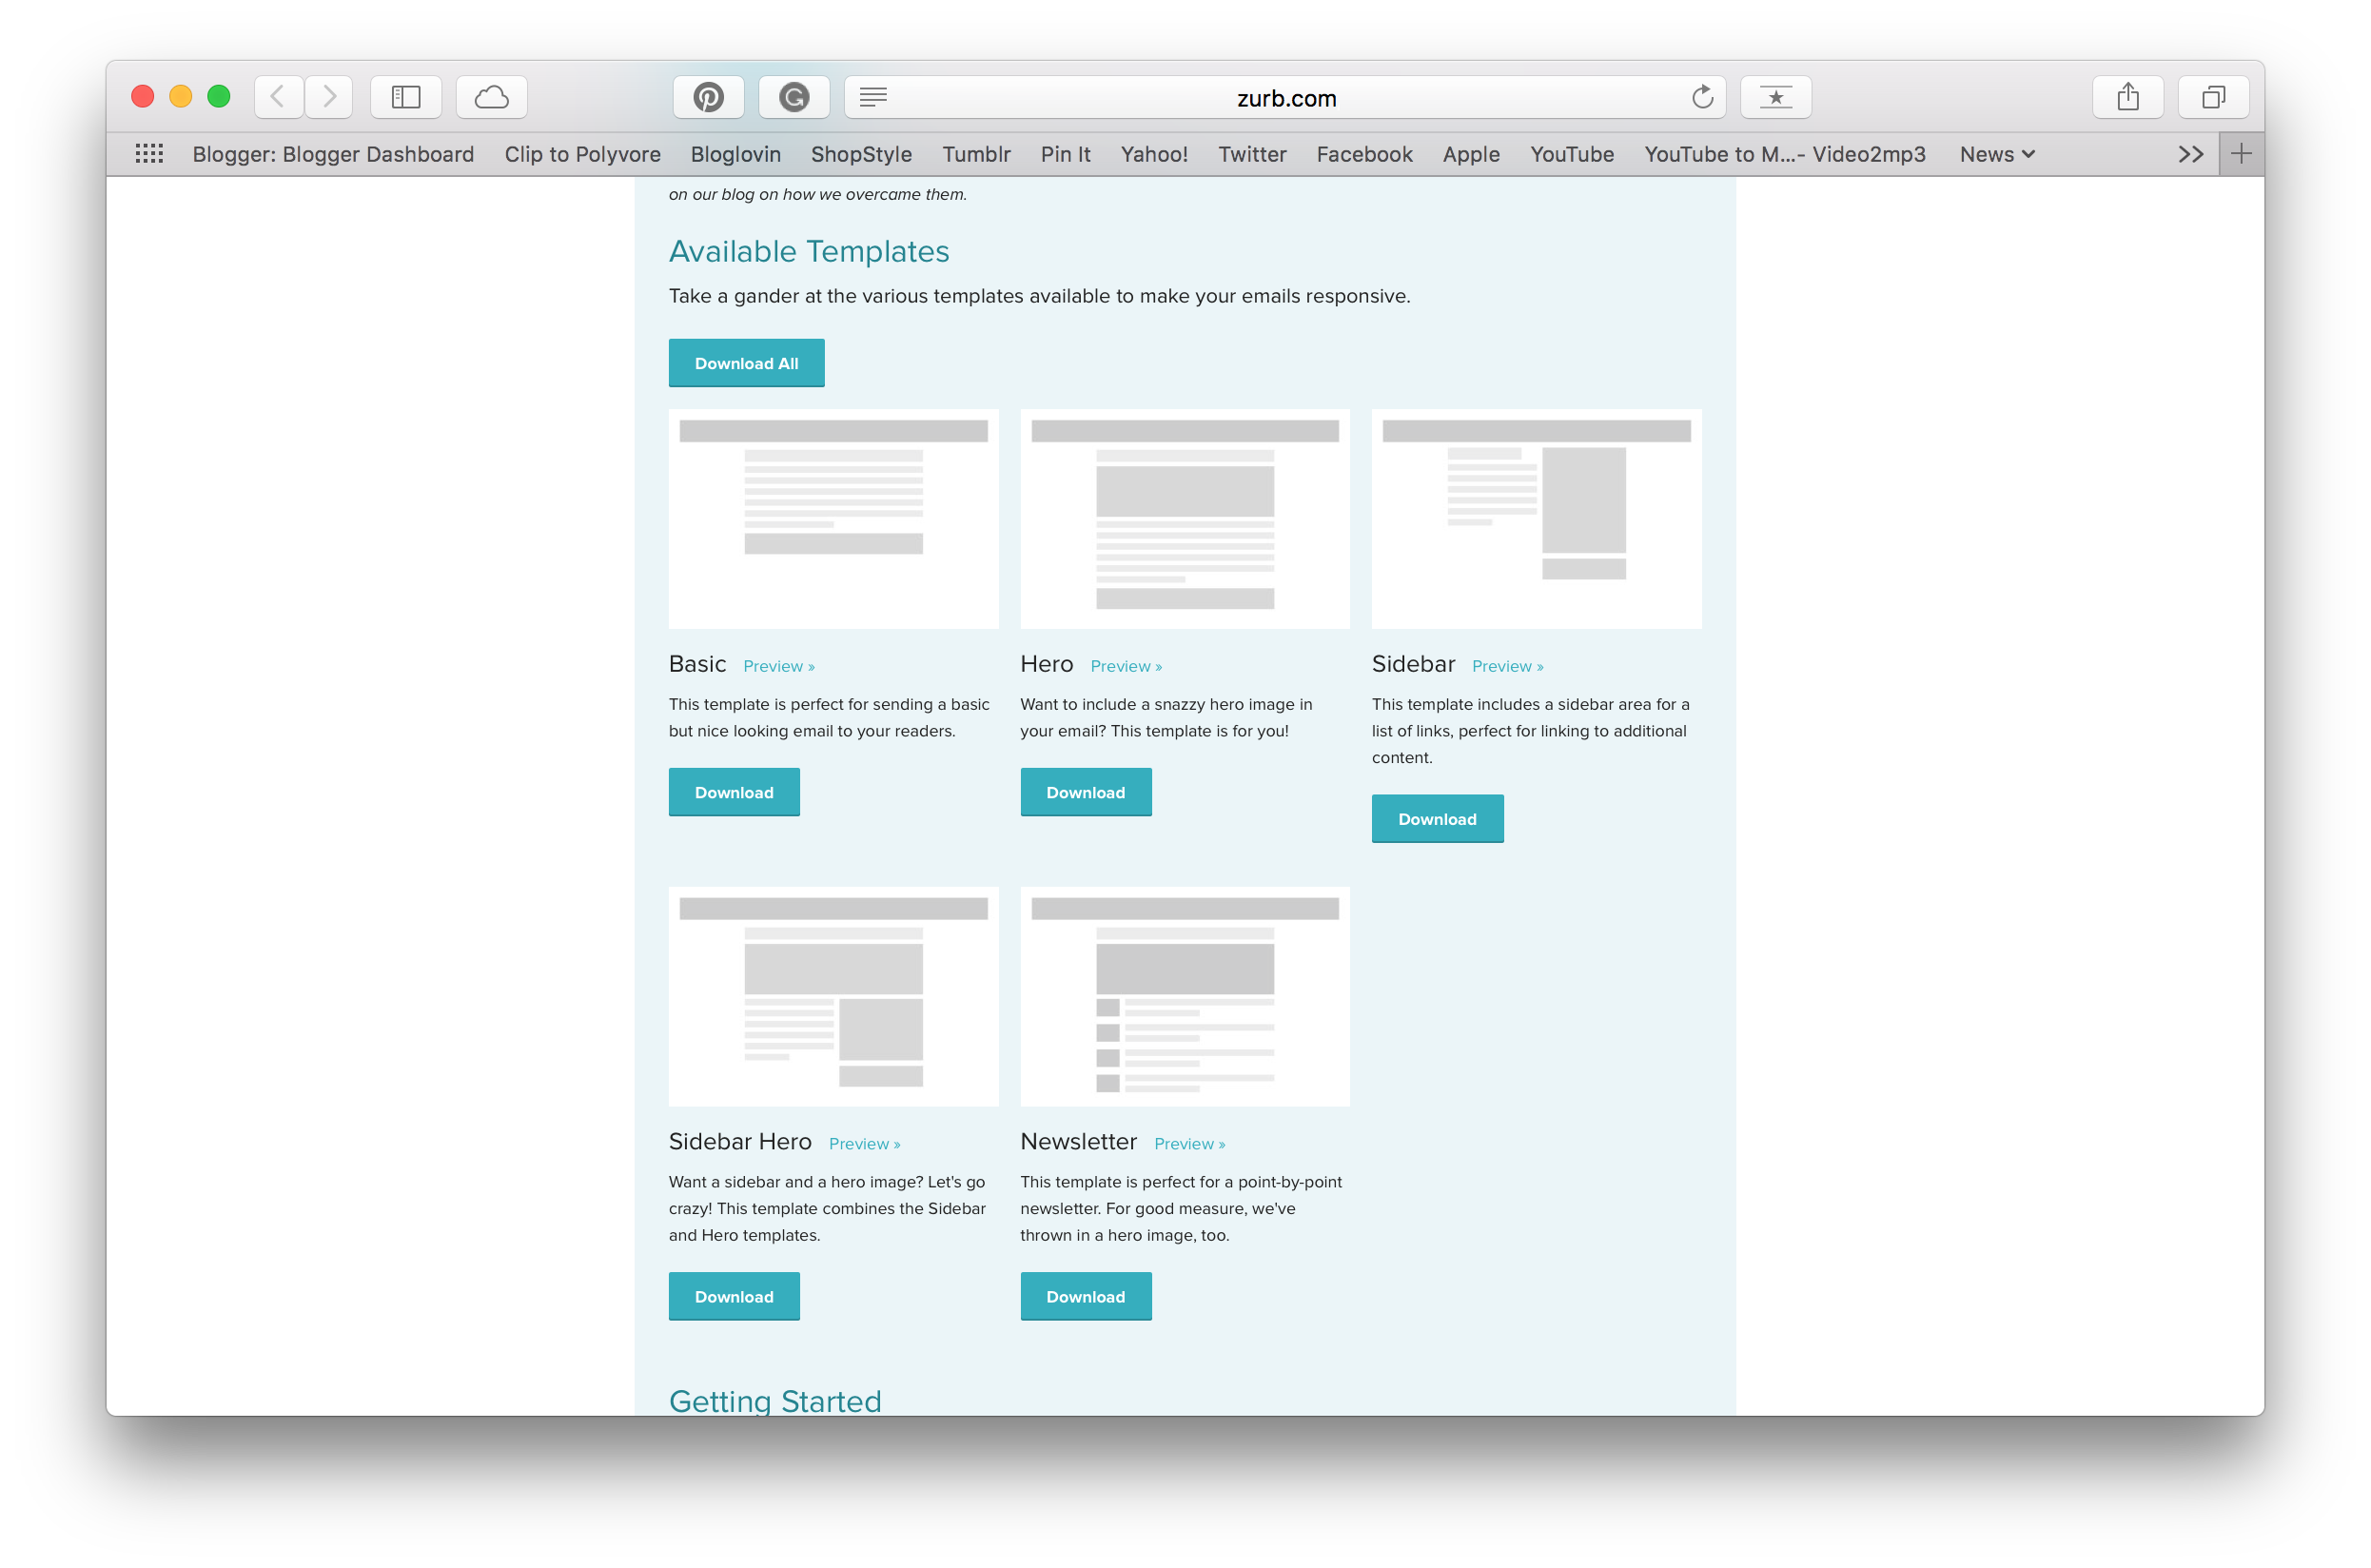 Email Marketing MailChimp And Free Templates LevelTen Dallas TX - Custom mailchimp templates free